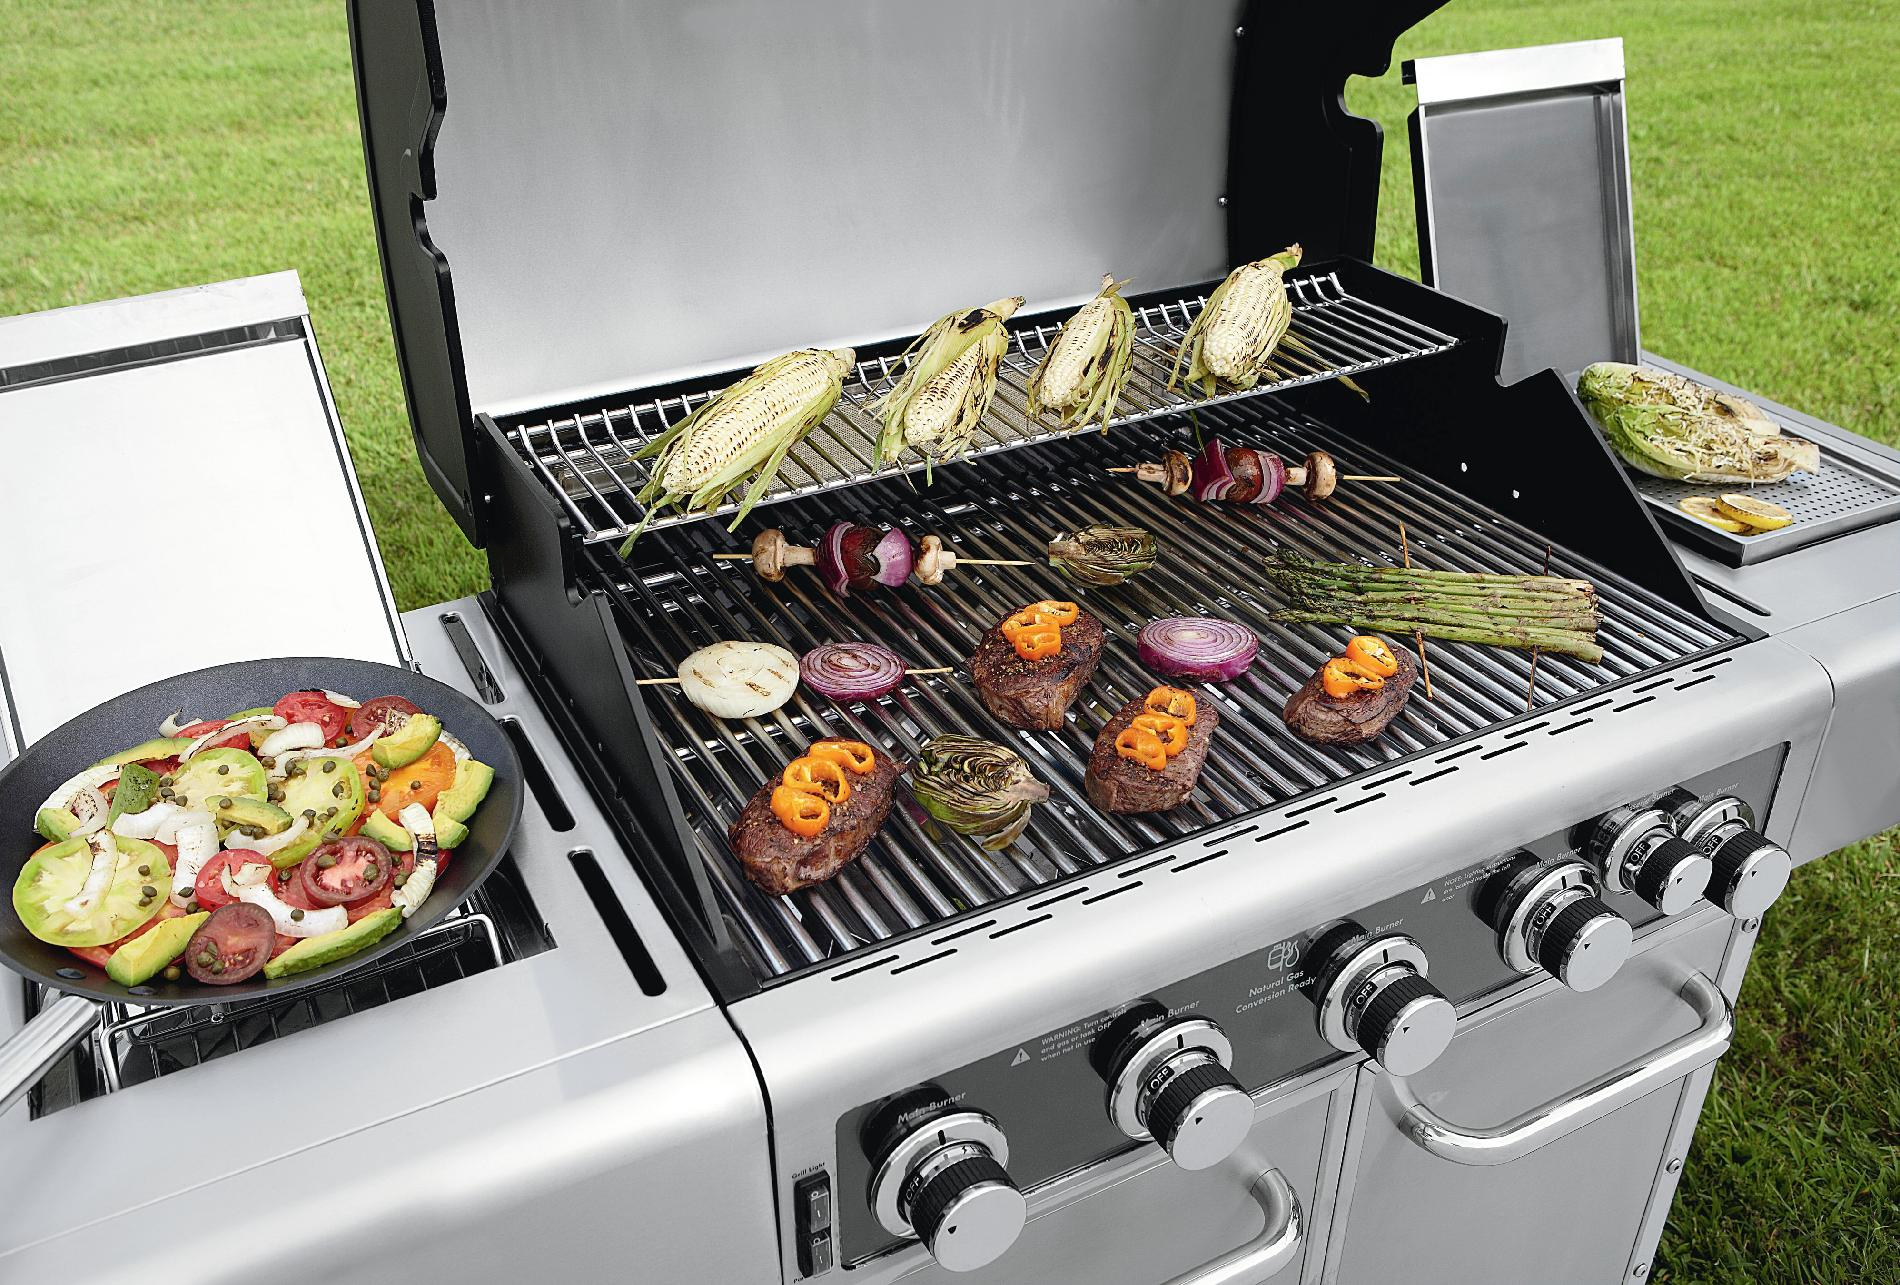 Kenmore Elite 700 Series 5 Burner Dual Fuel Stainless Steel Gas Grill